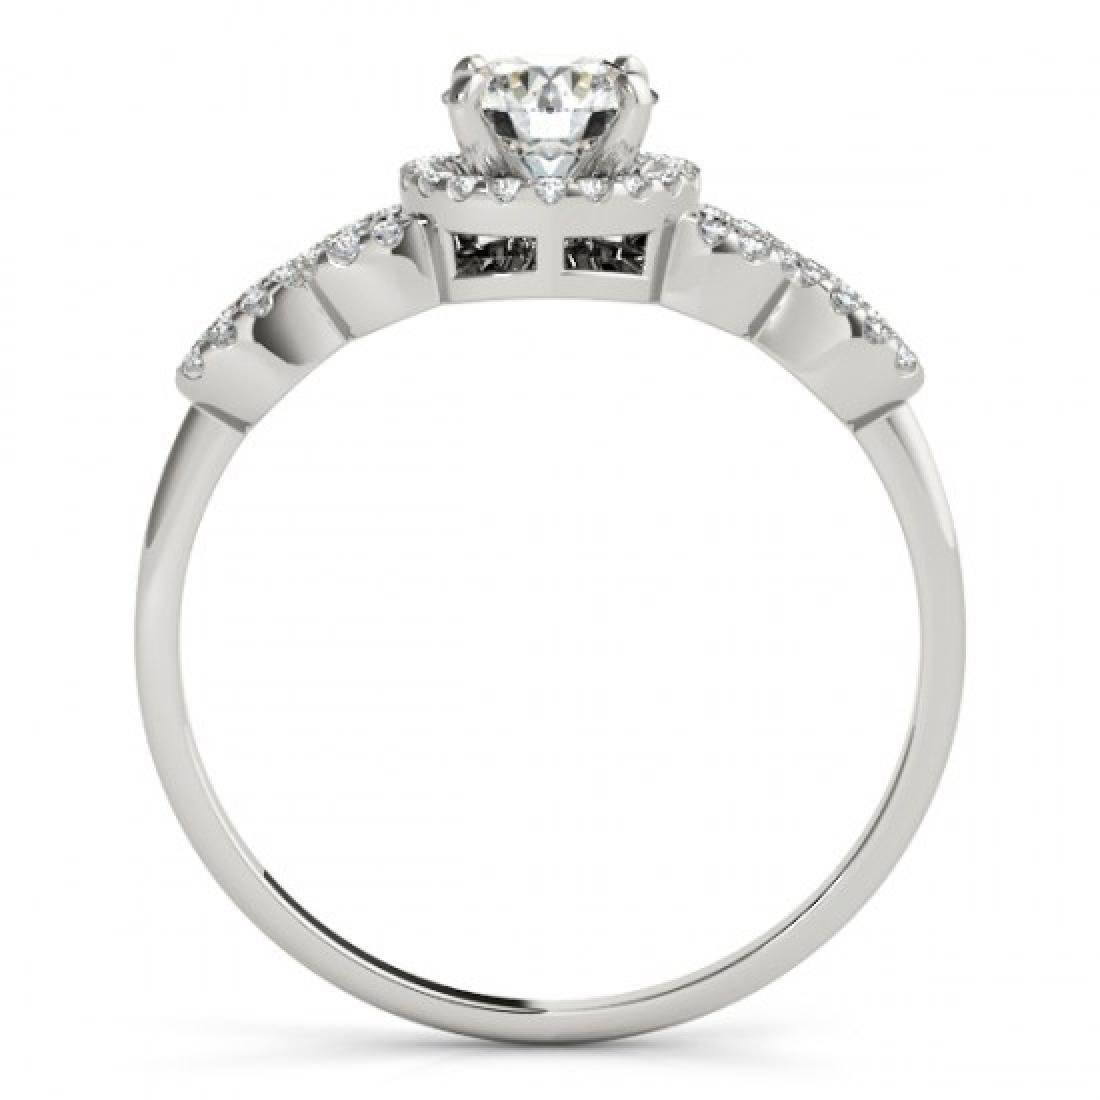 1.33 CTW Certified VS/SI Diamond Solitaire Ring 14K - 2